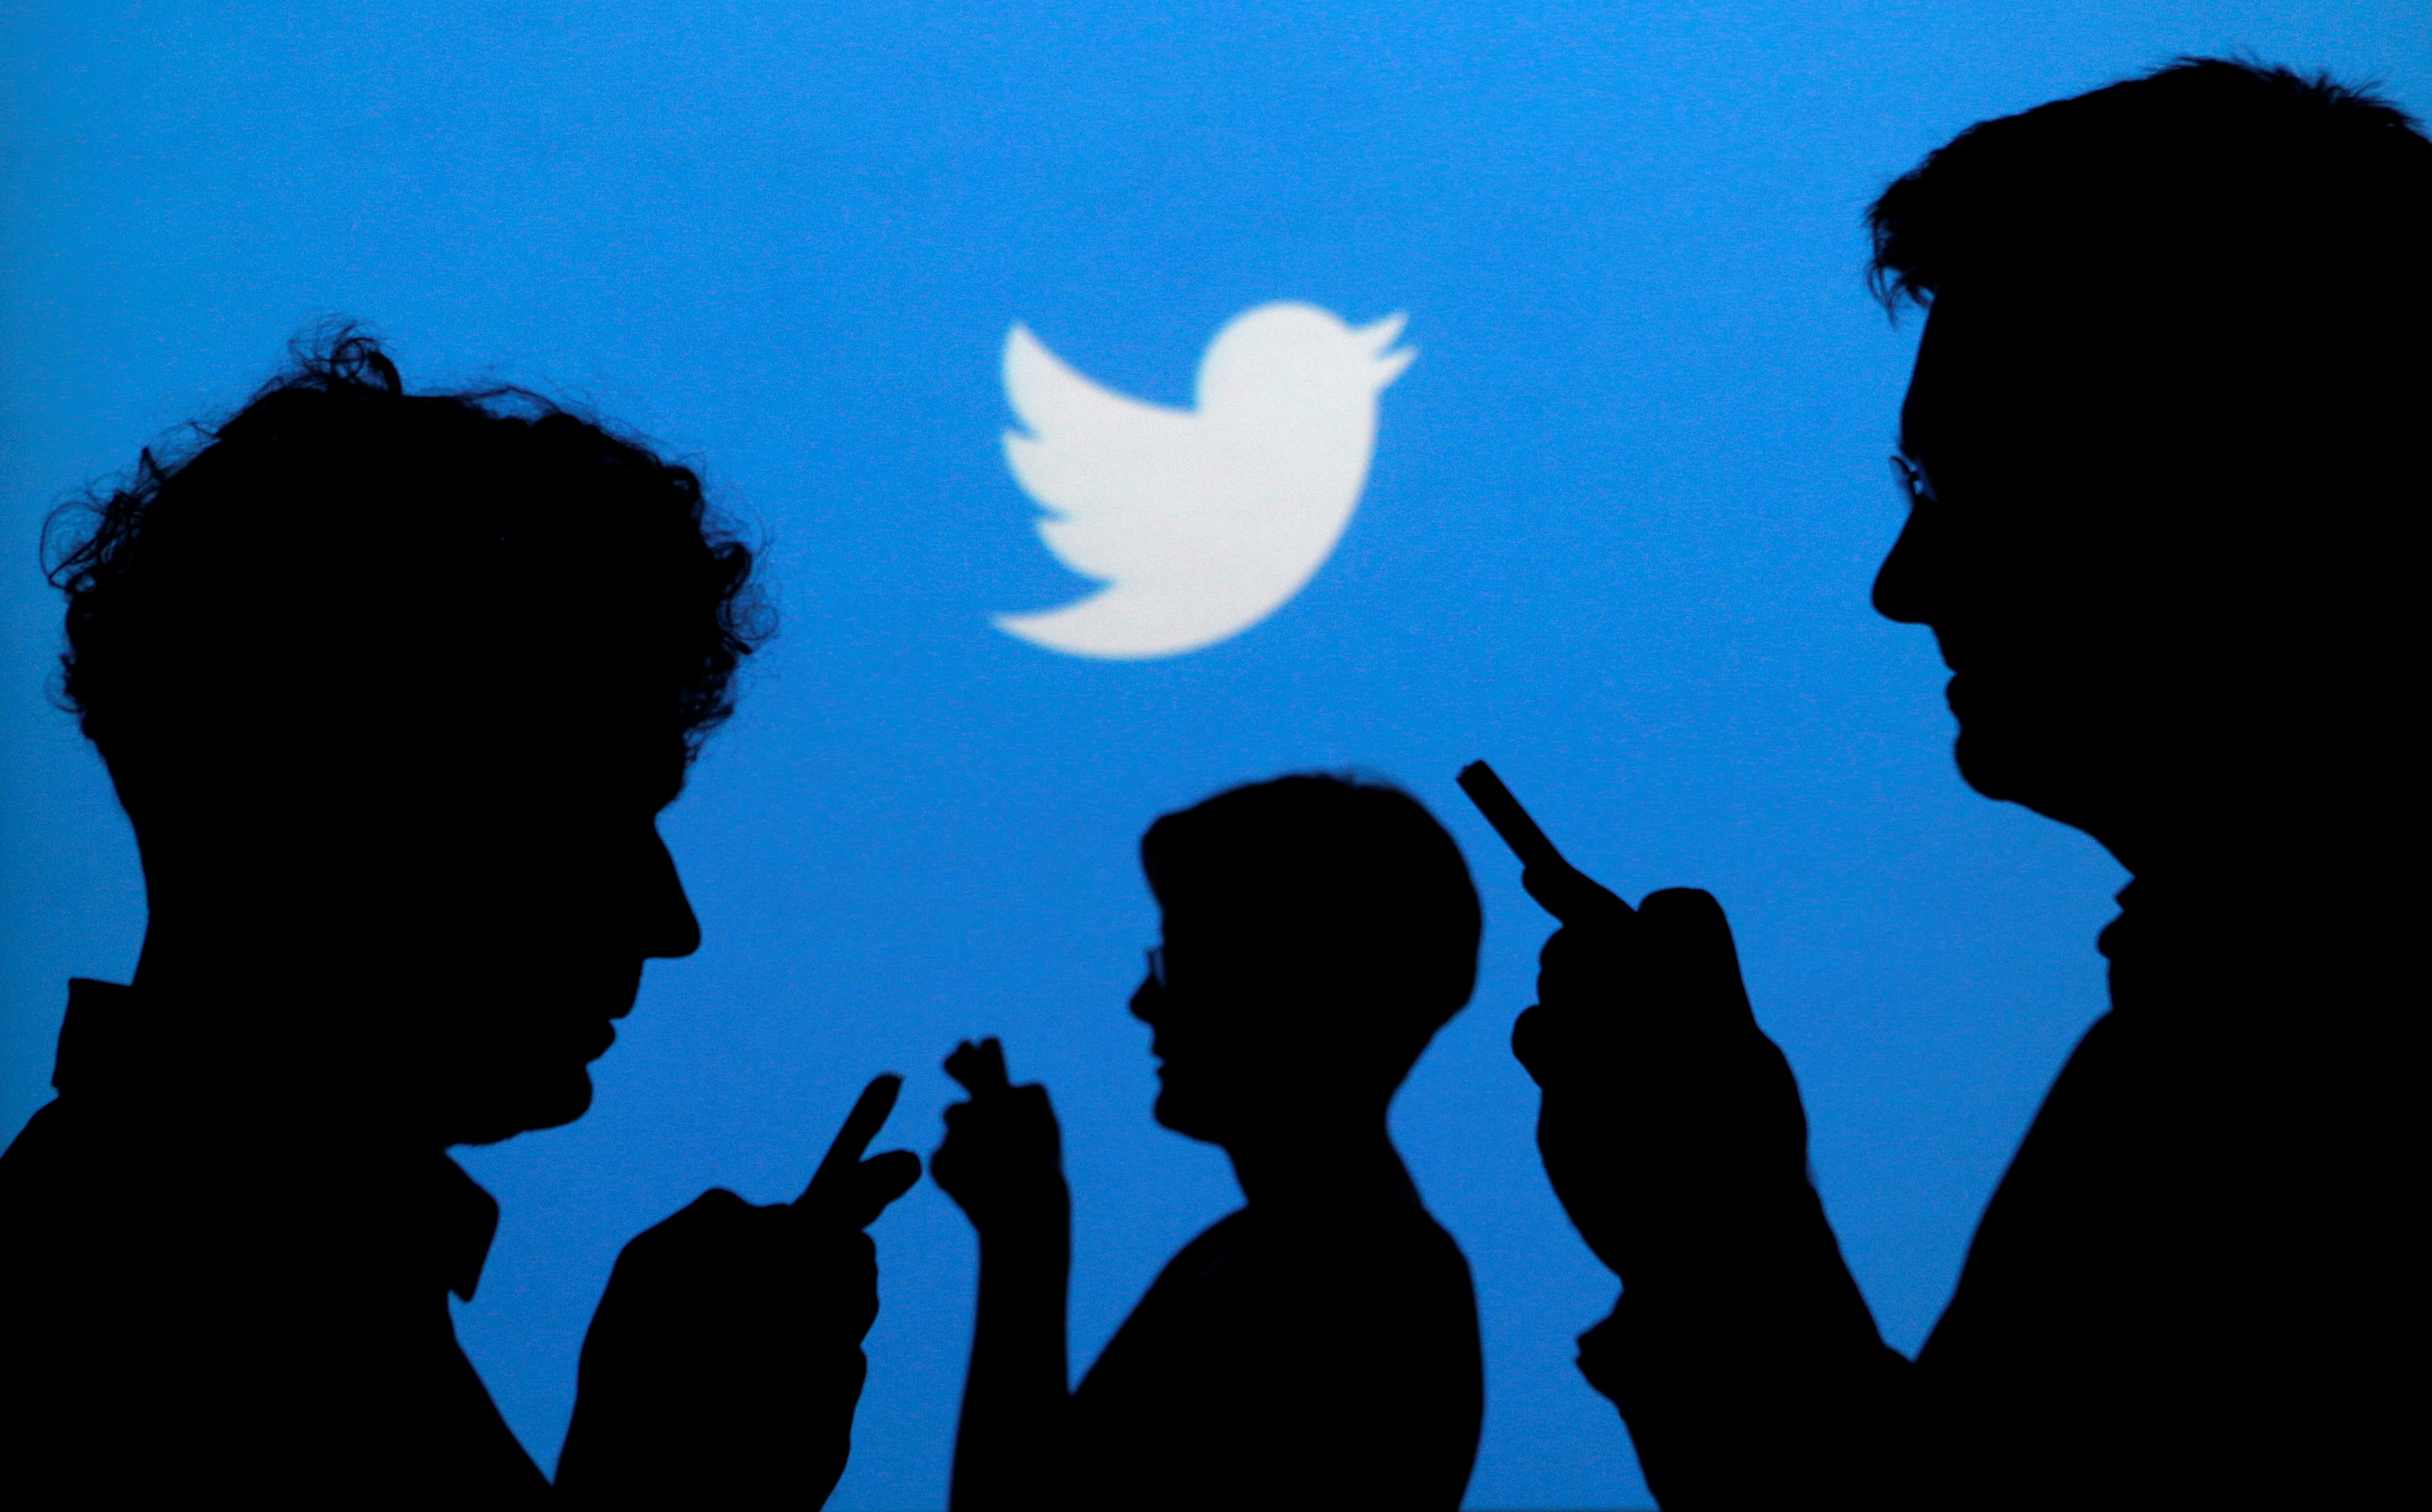 How trolls use Twitter lists to target and harass other users